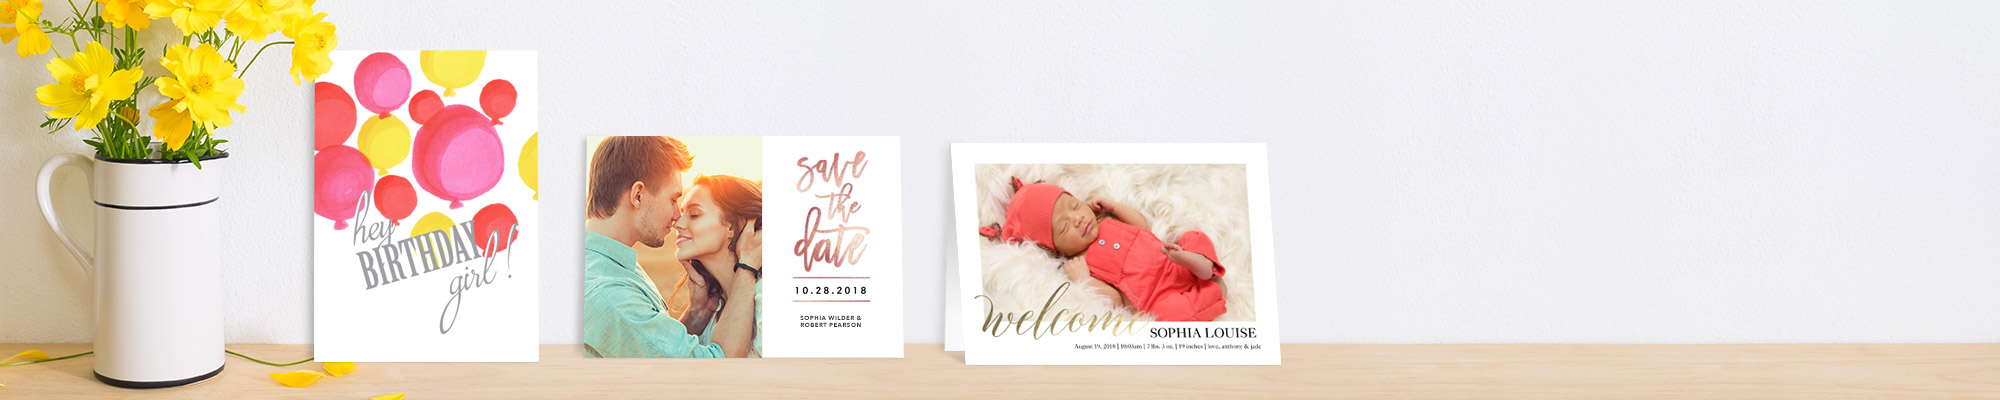 Personalised Photo Cards & Invitations - Truprint